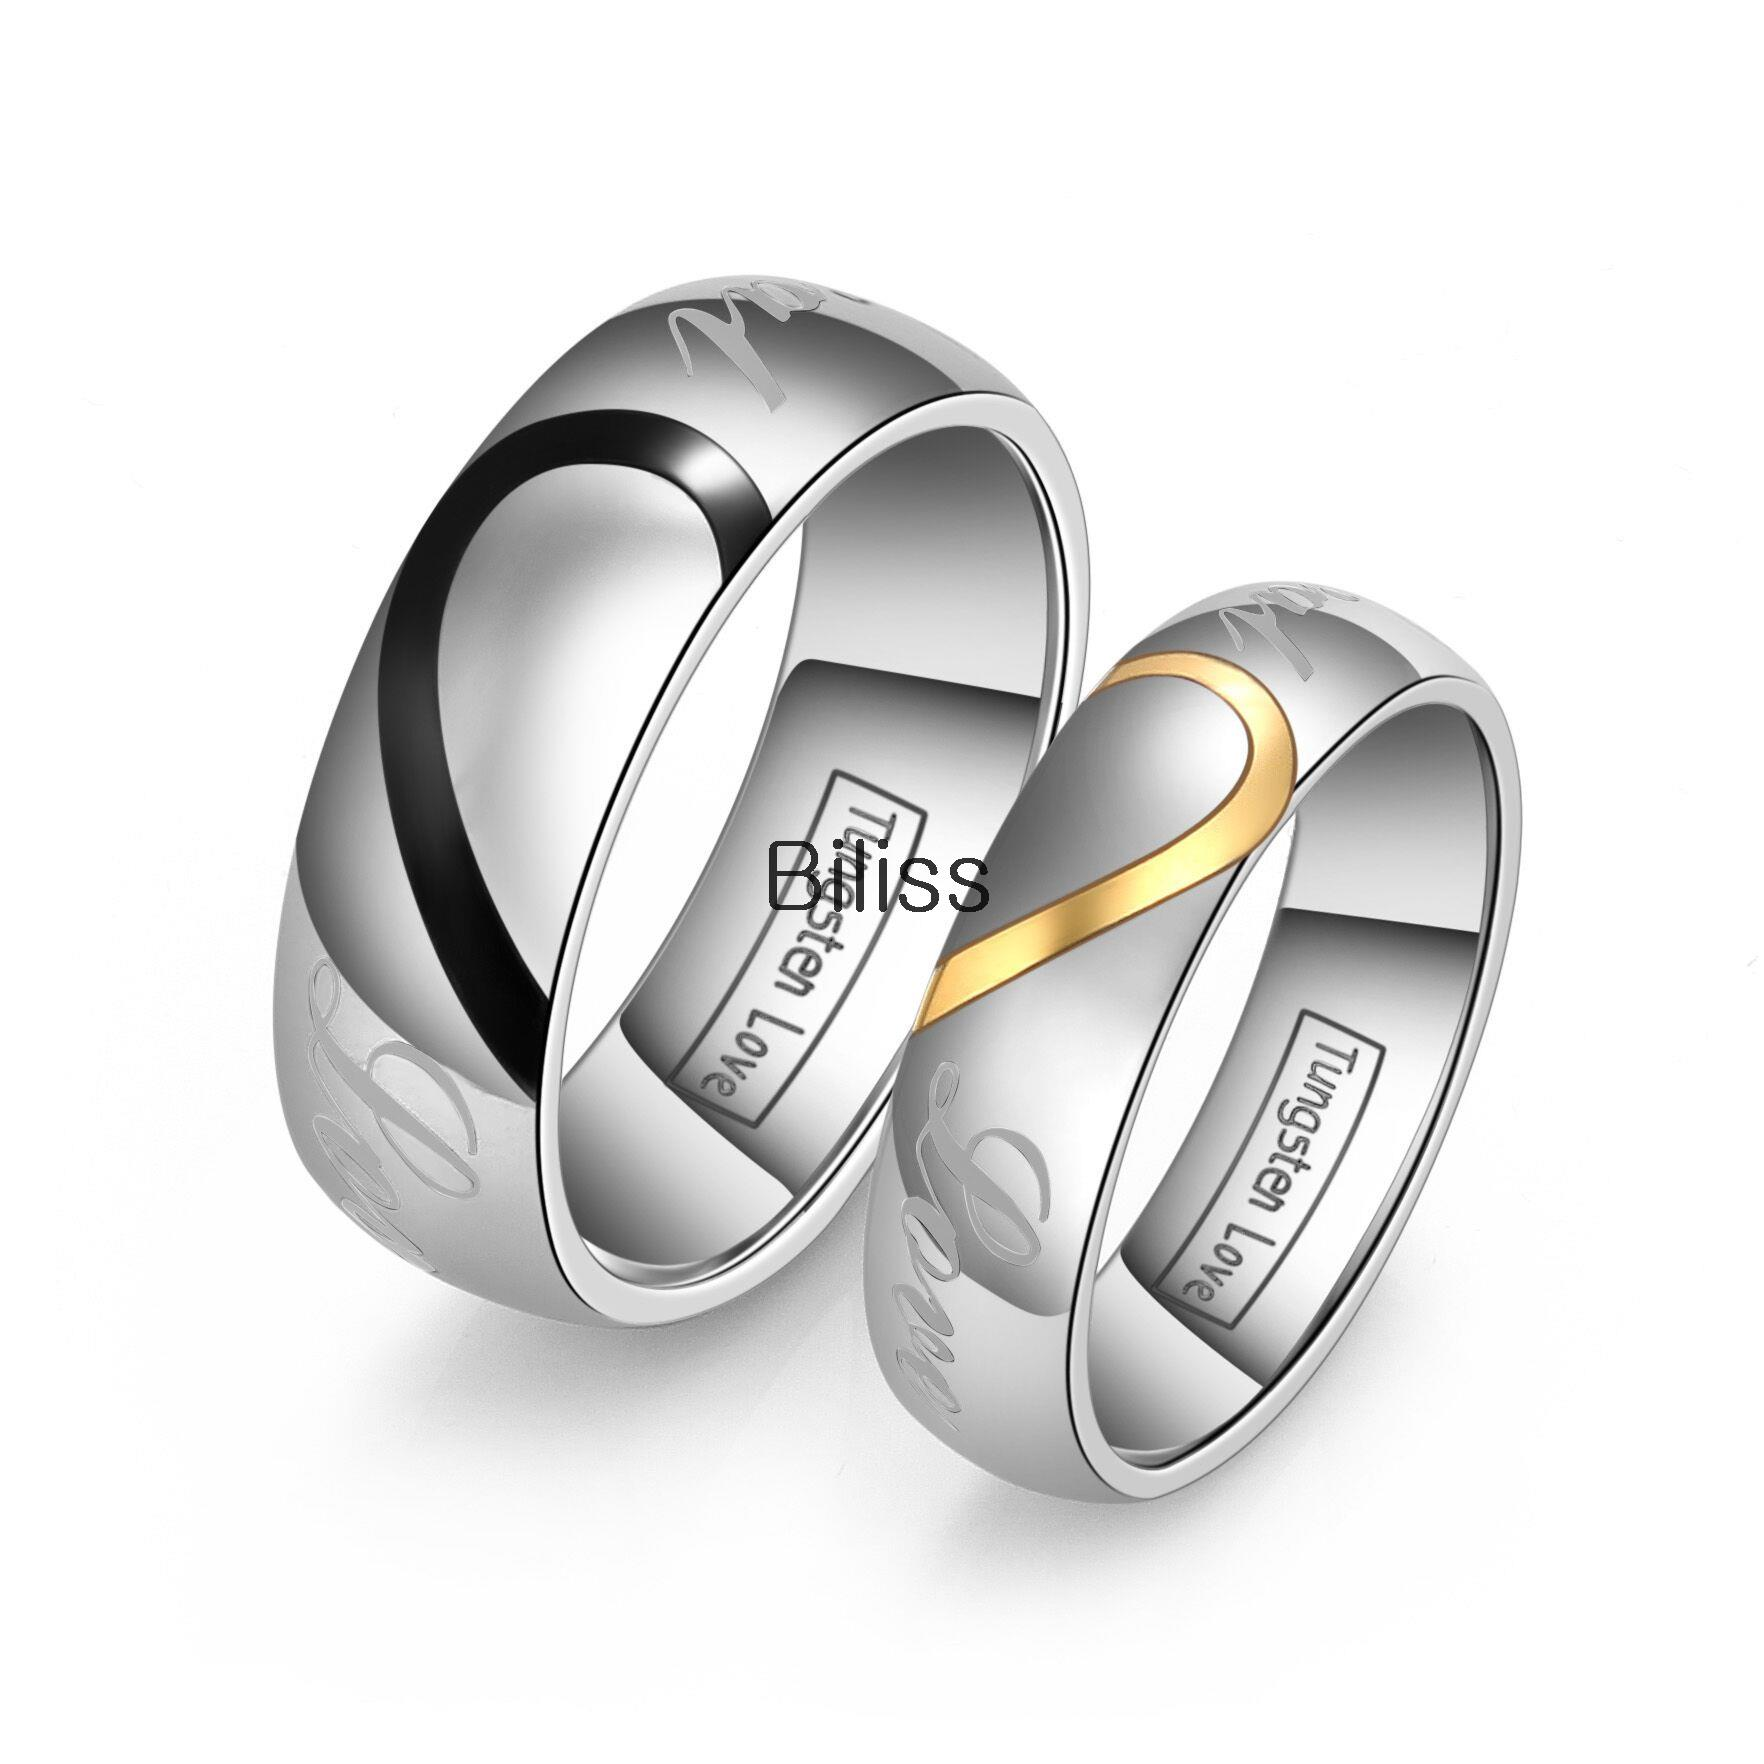 lovers matching heart tungsten carbide men women promise real love couples engagement ring wedding - Wedding Rings For Men And Women